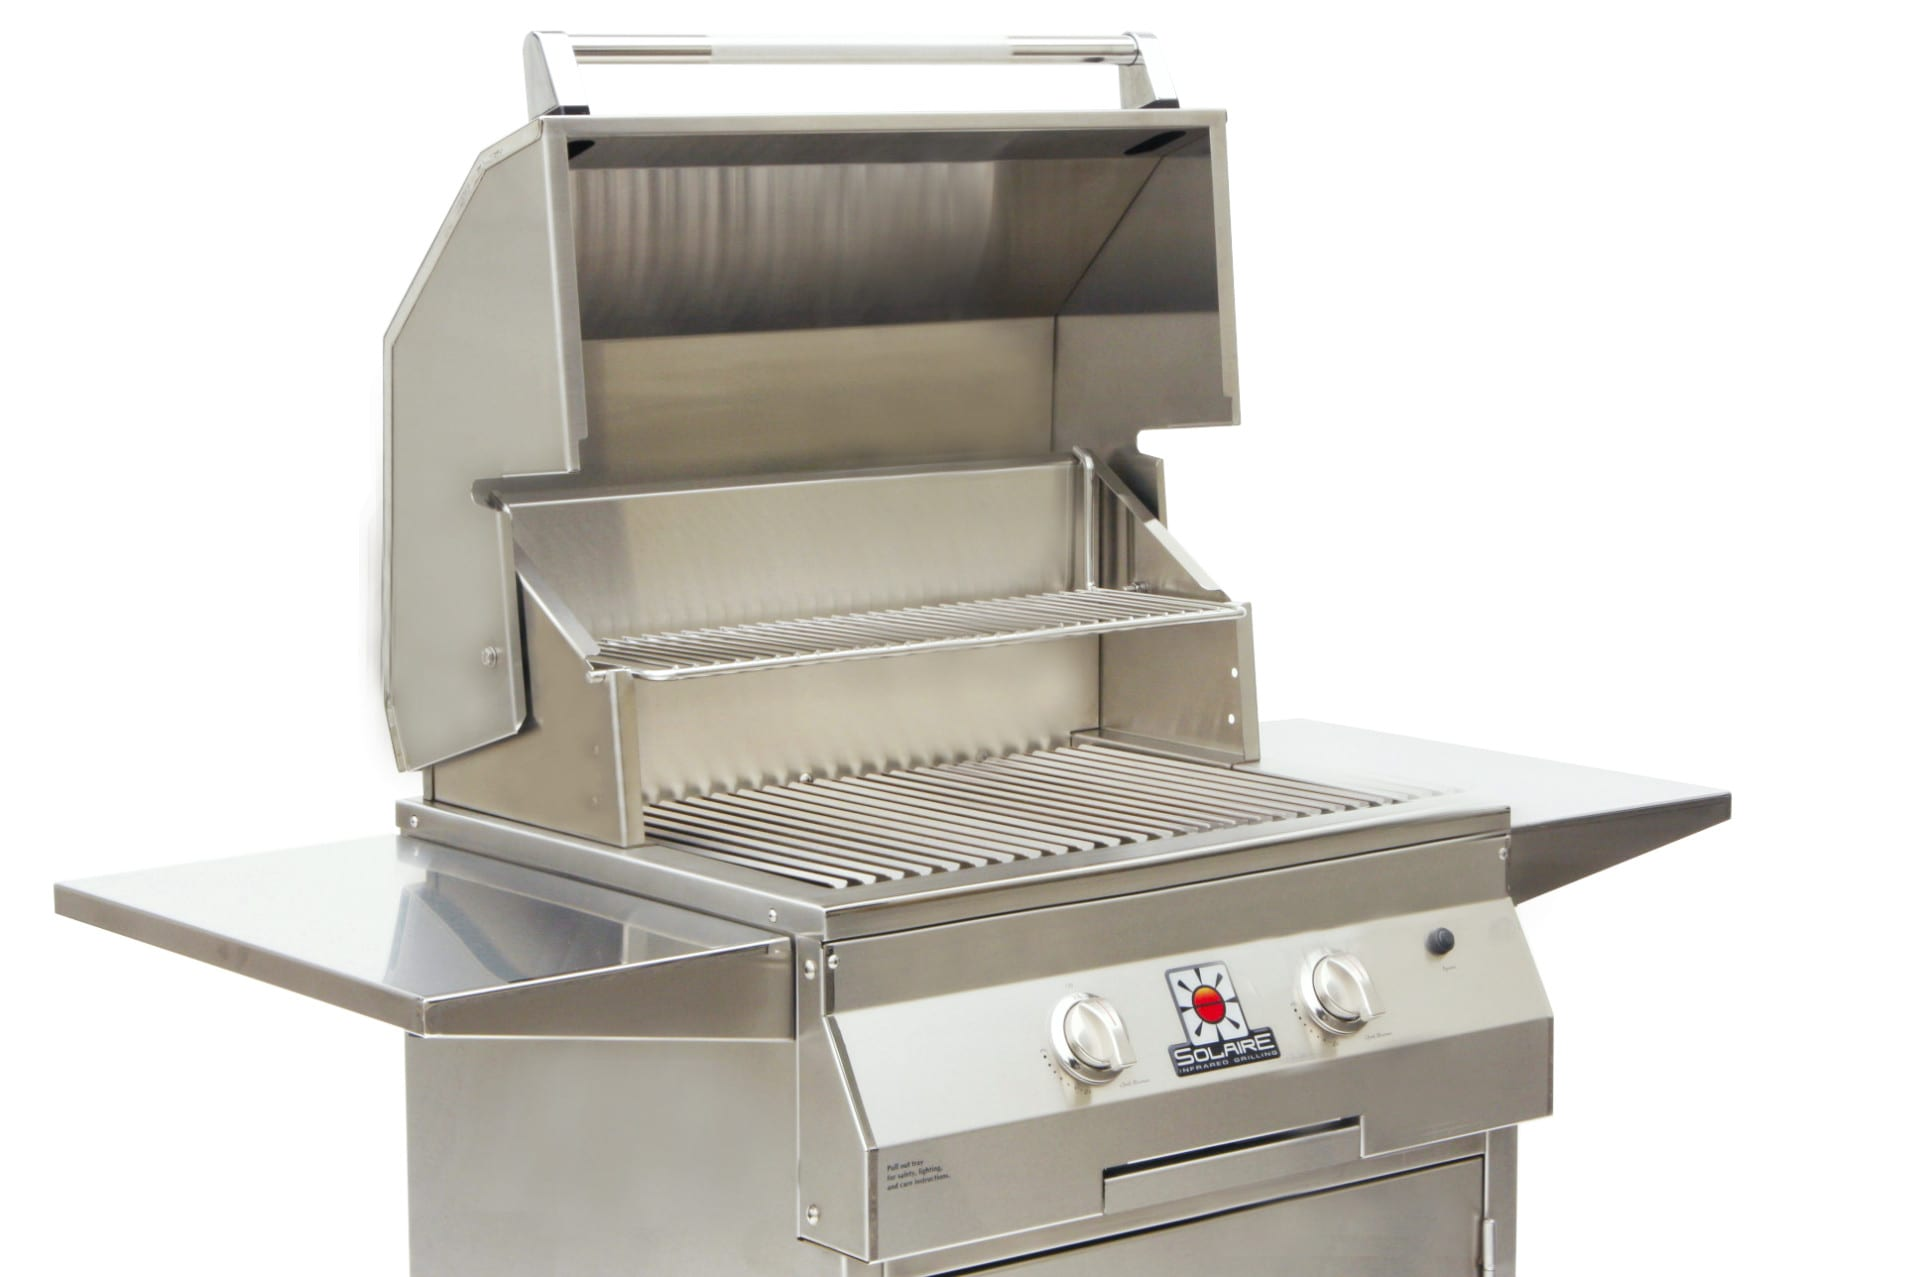 kitchens watch and grills boats pedestal on grill trend a boating youtube